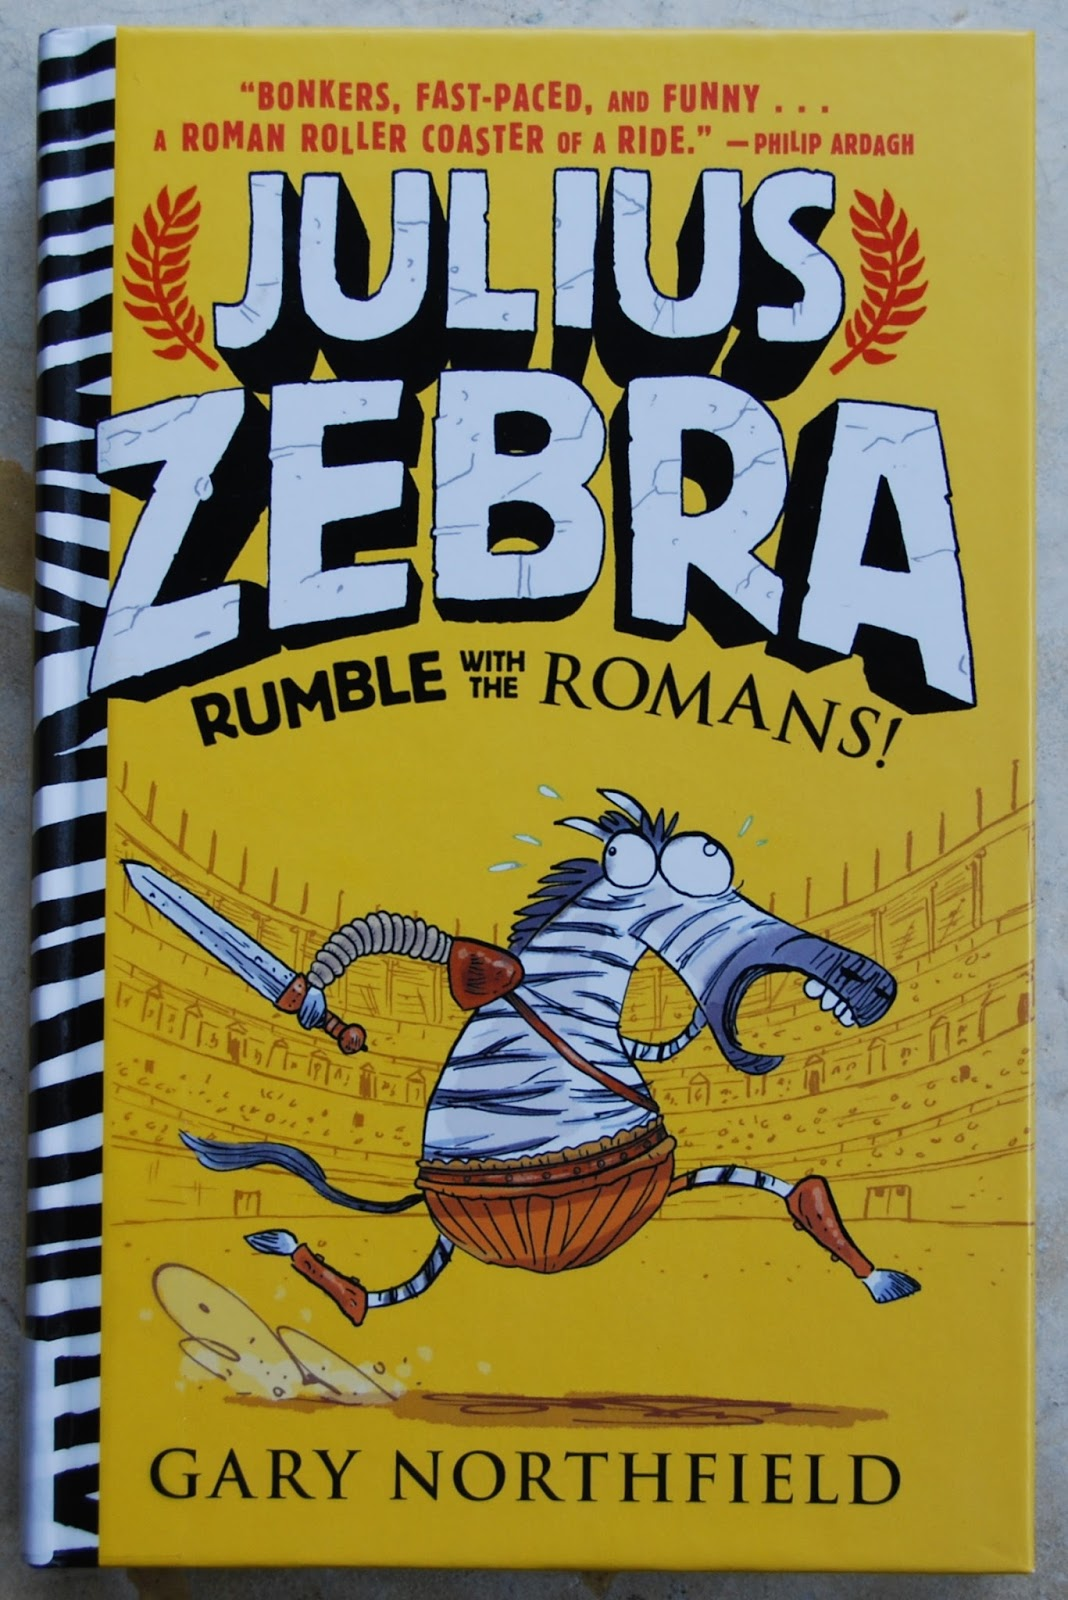 one great book julius zebra is gladiator fun for kids